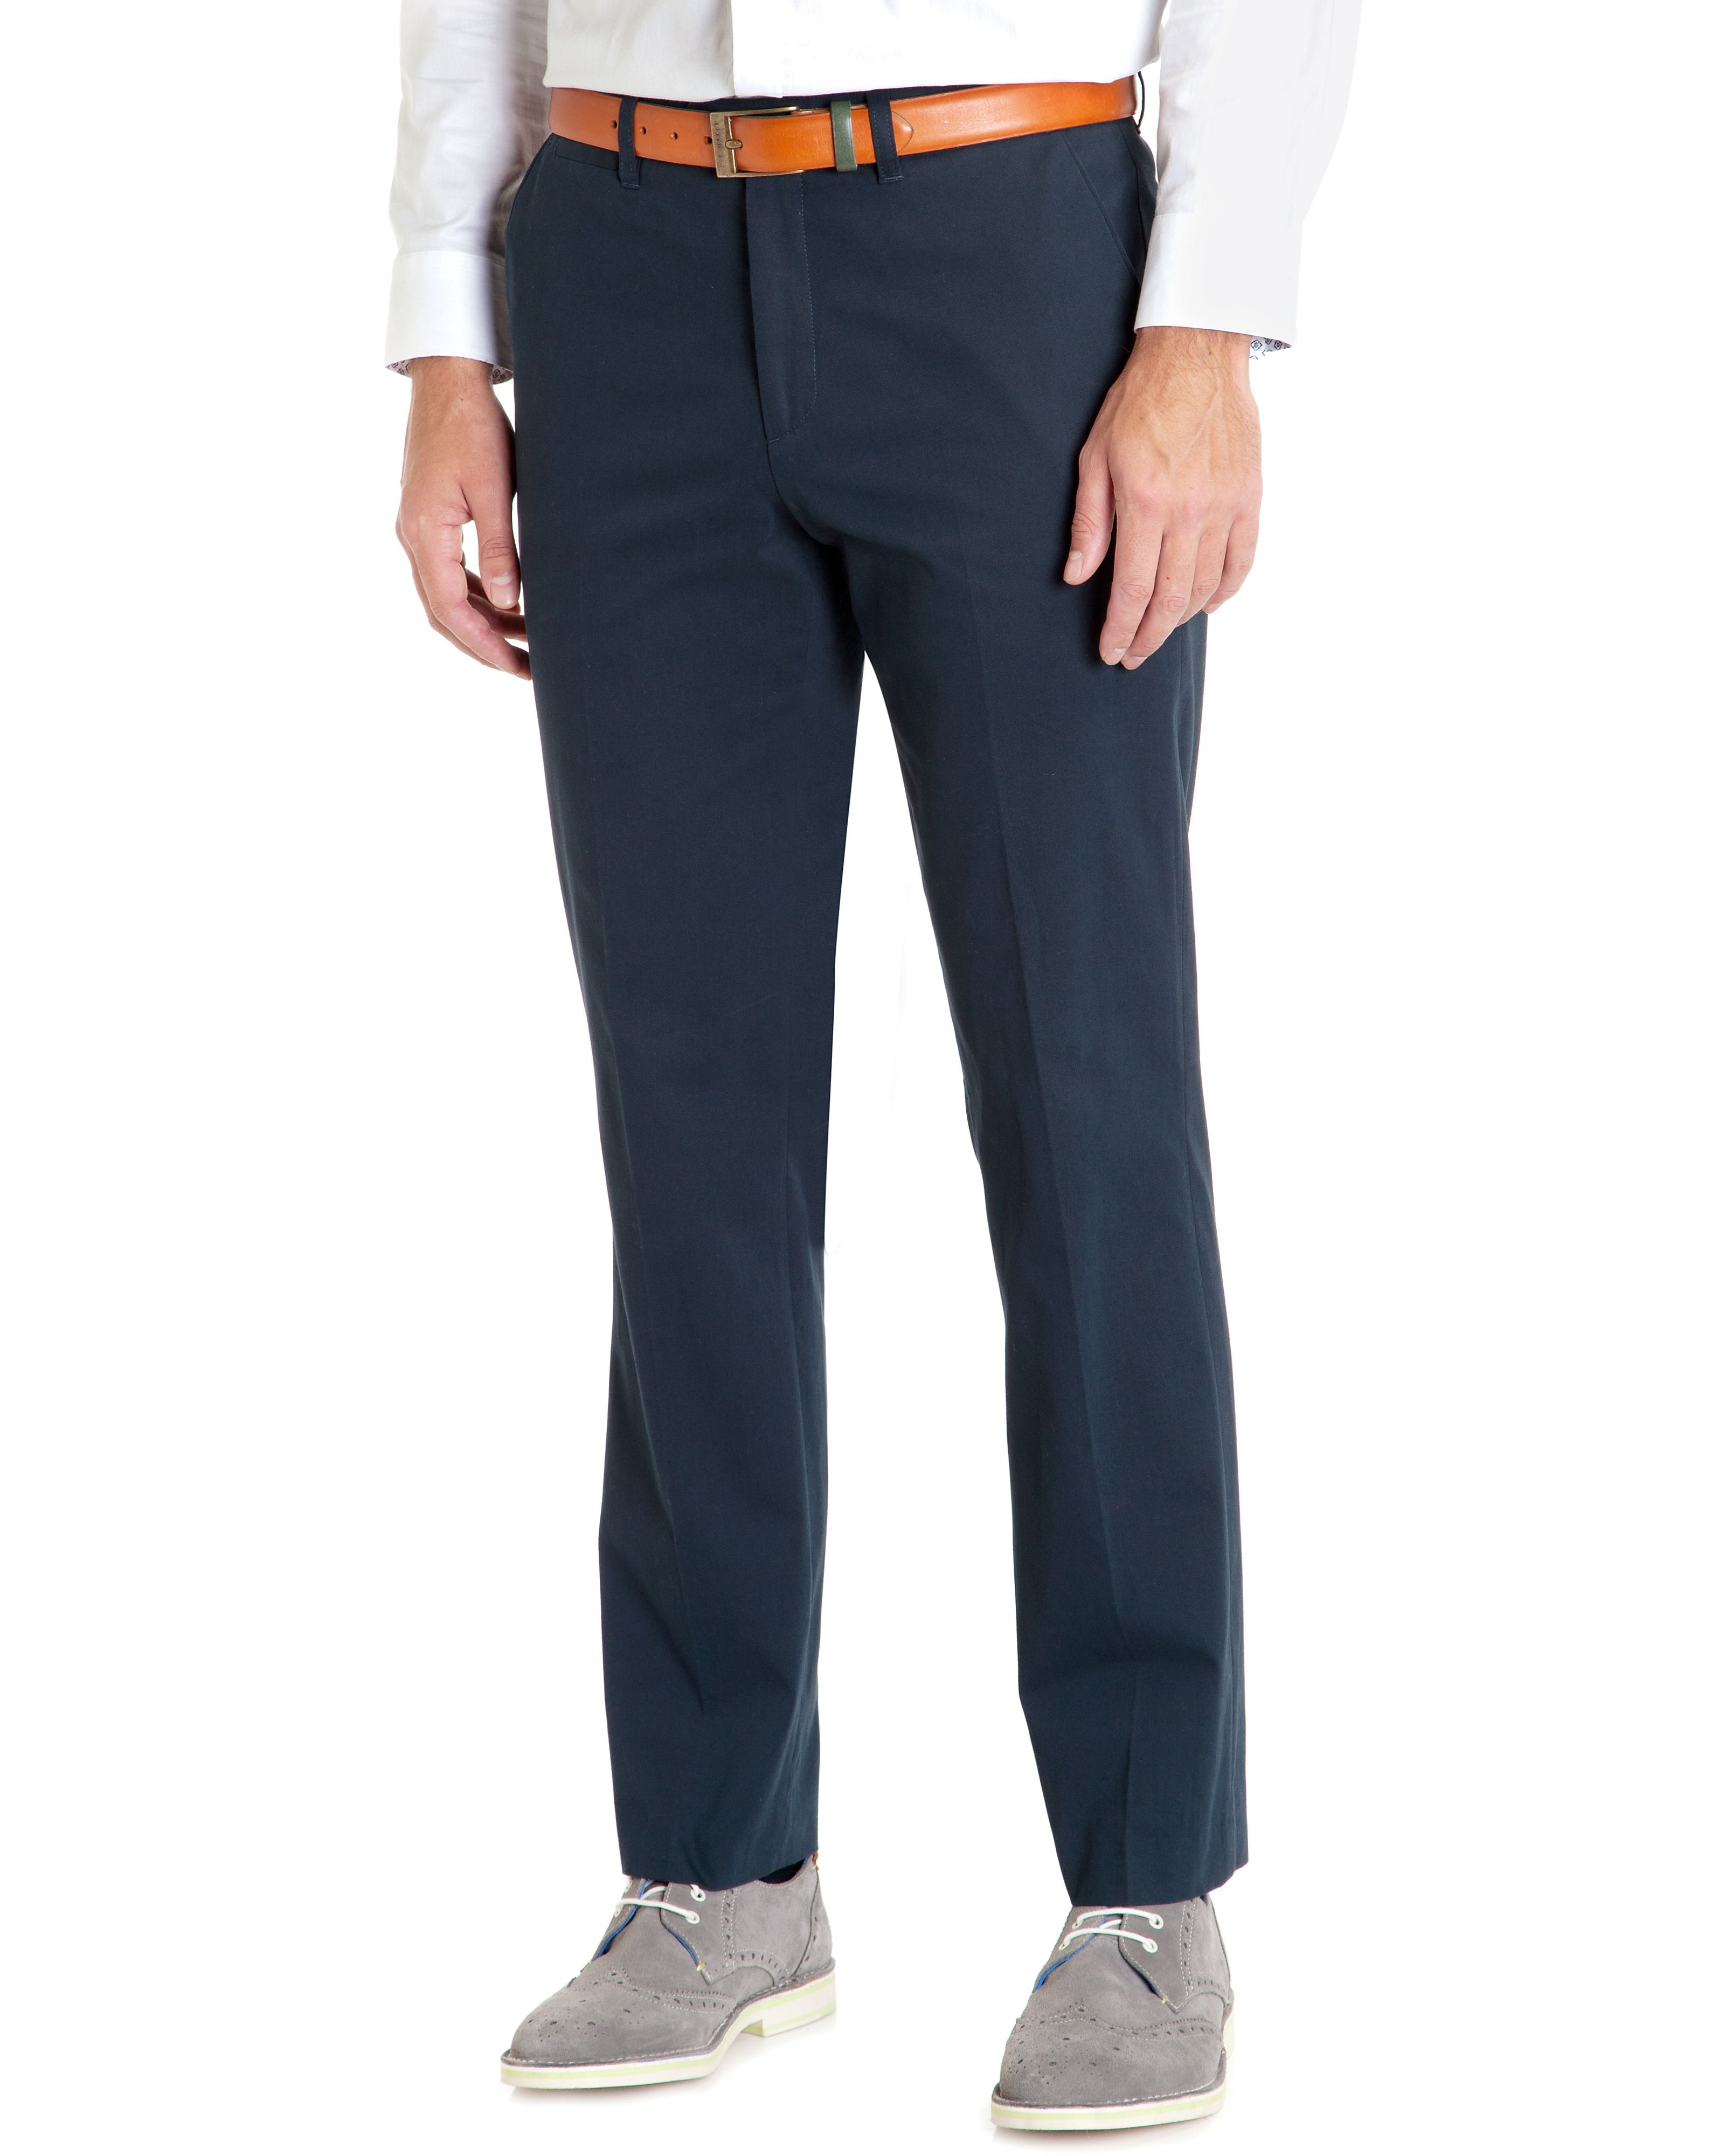 Statro cotton trouser